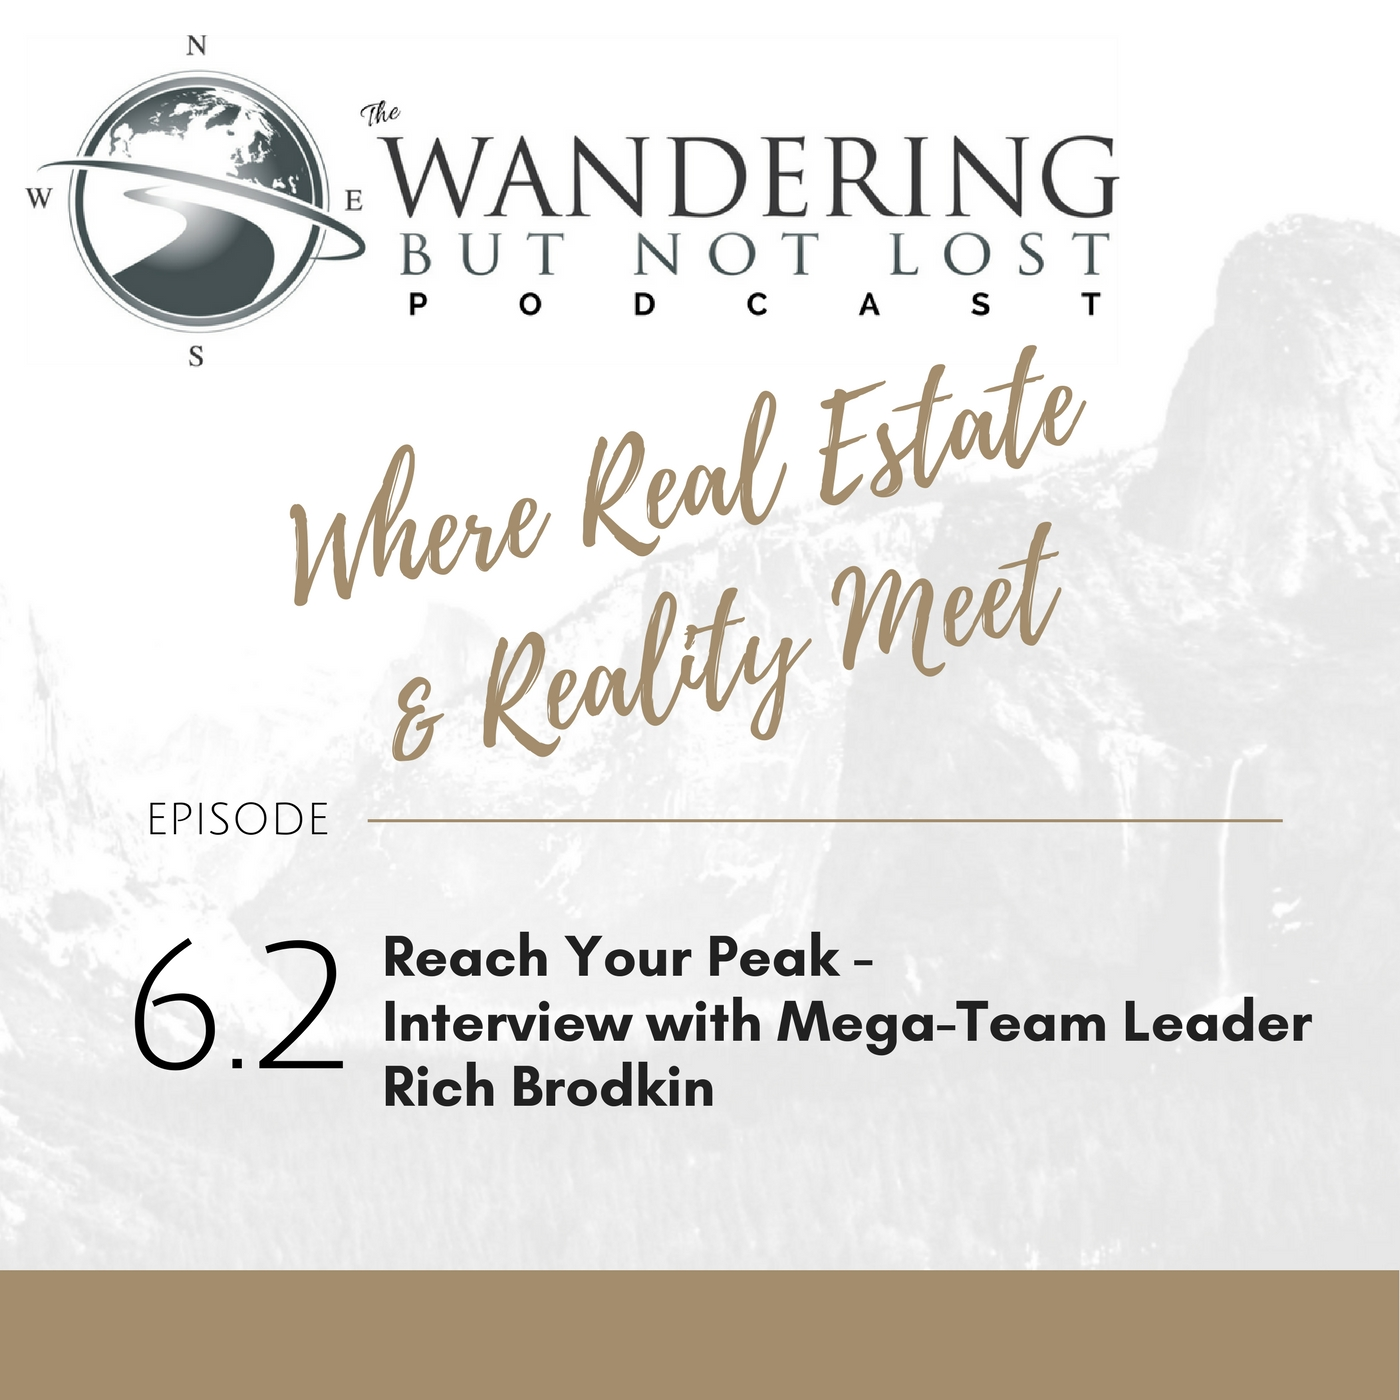 Artwork for Episode 6.2: Reach Your Peak - Interview with Mega-Team Leader Rich Brodkin